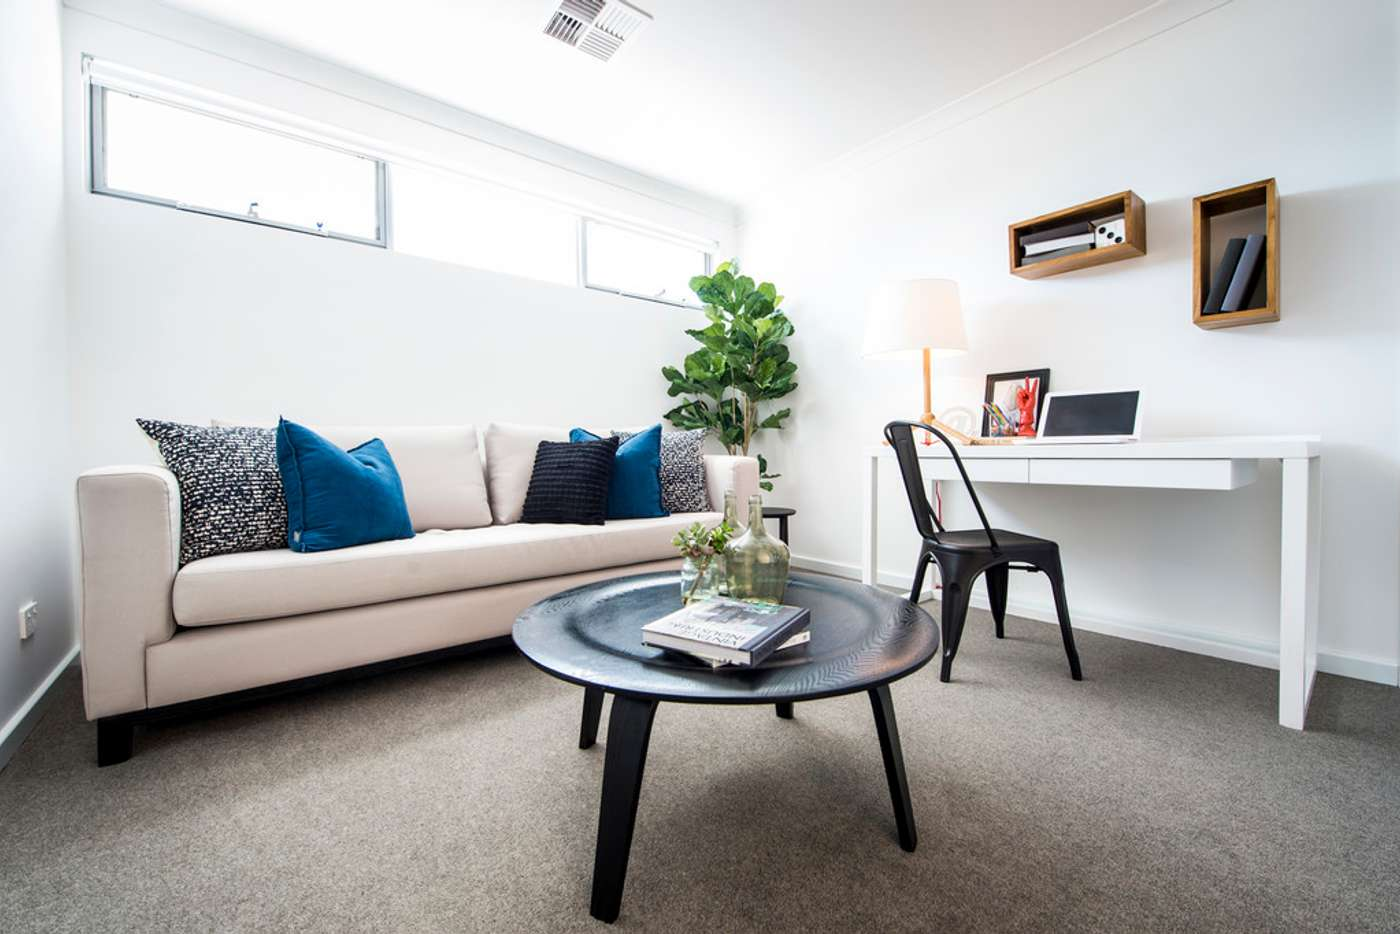 Seventh view of Homely house listing, 1/12 Loder Way, South Guildford WA 6055